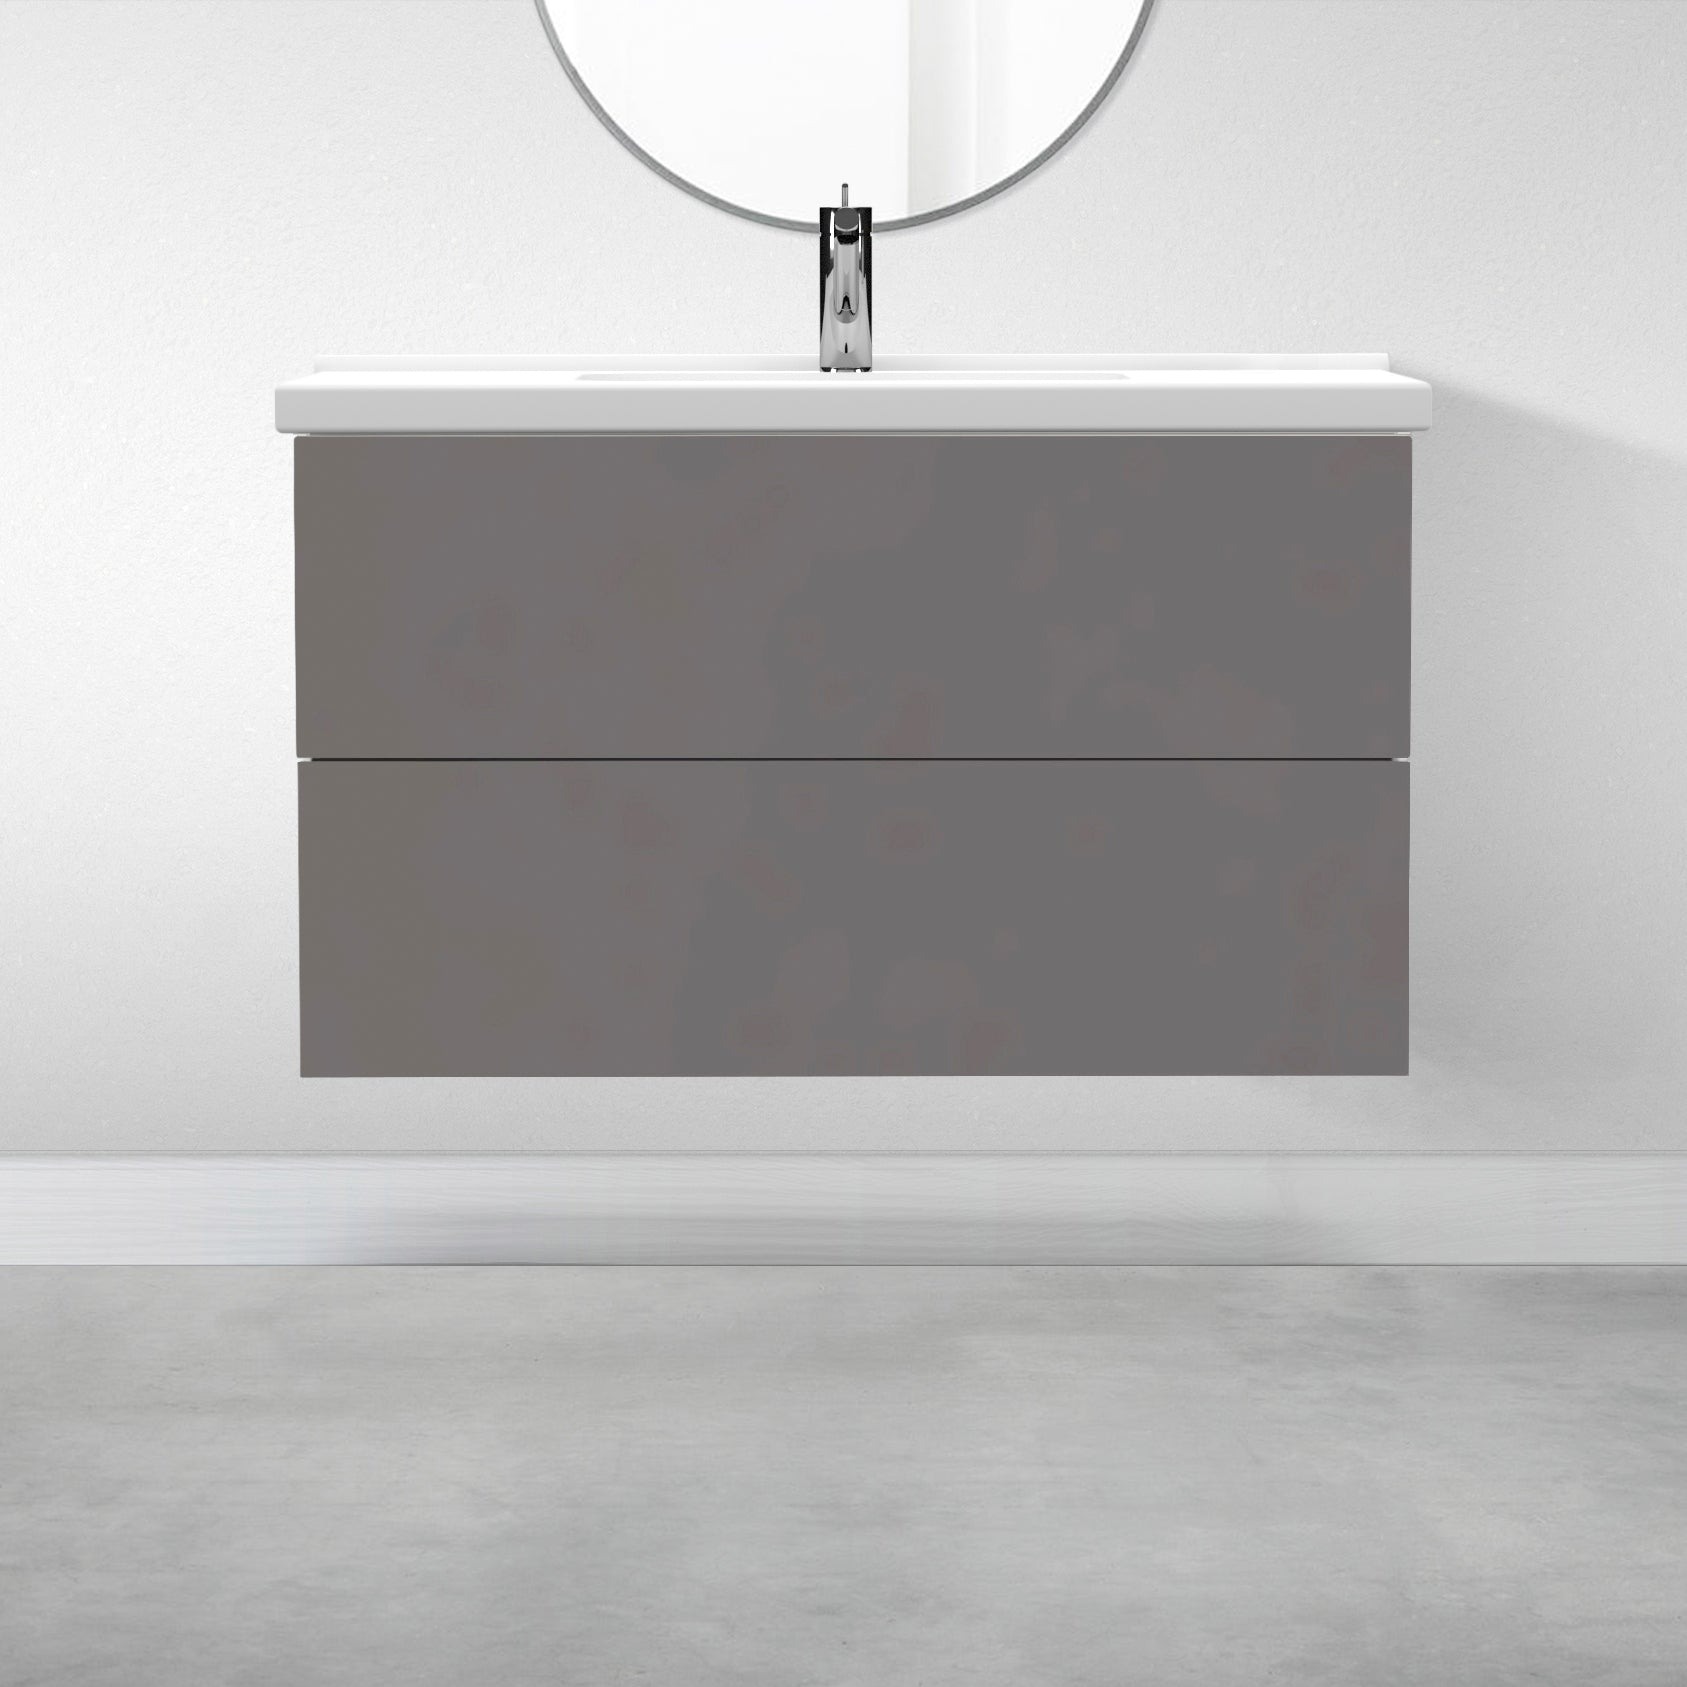 "2 Drawers - 39 3/8"" for Godmorgon Supermatte Slab / Grey"